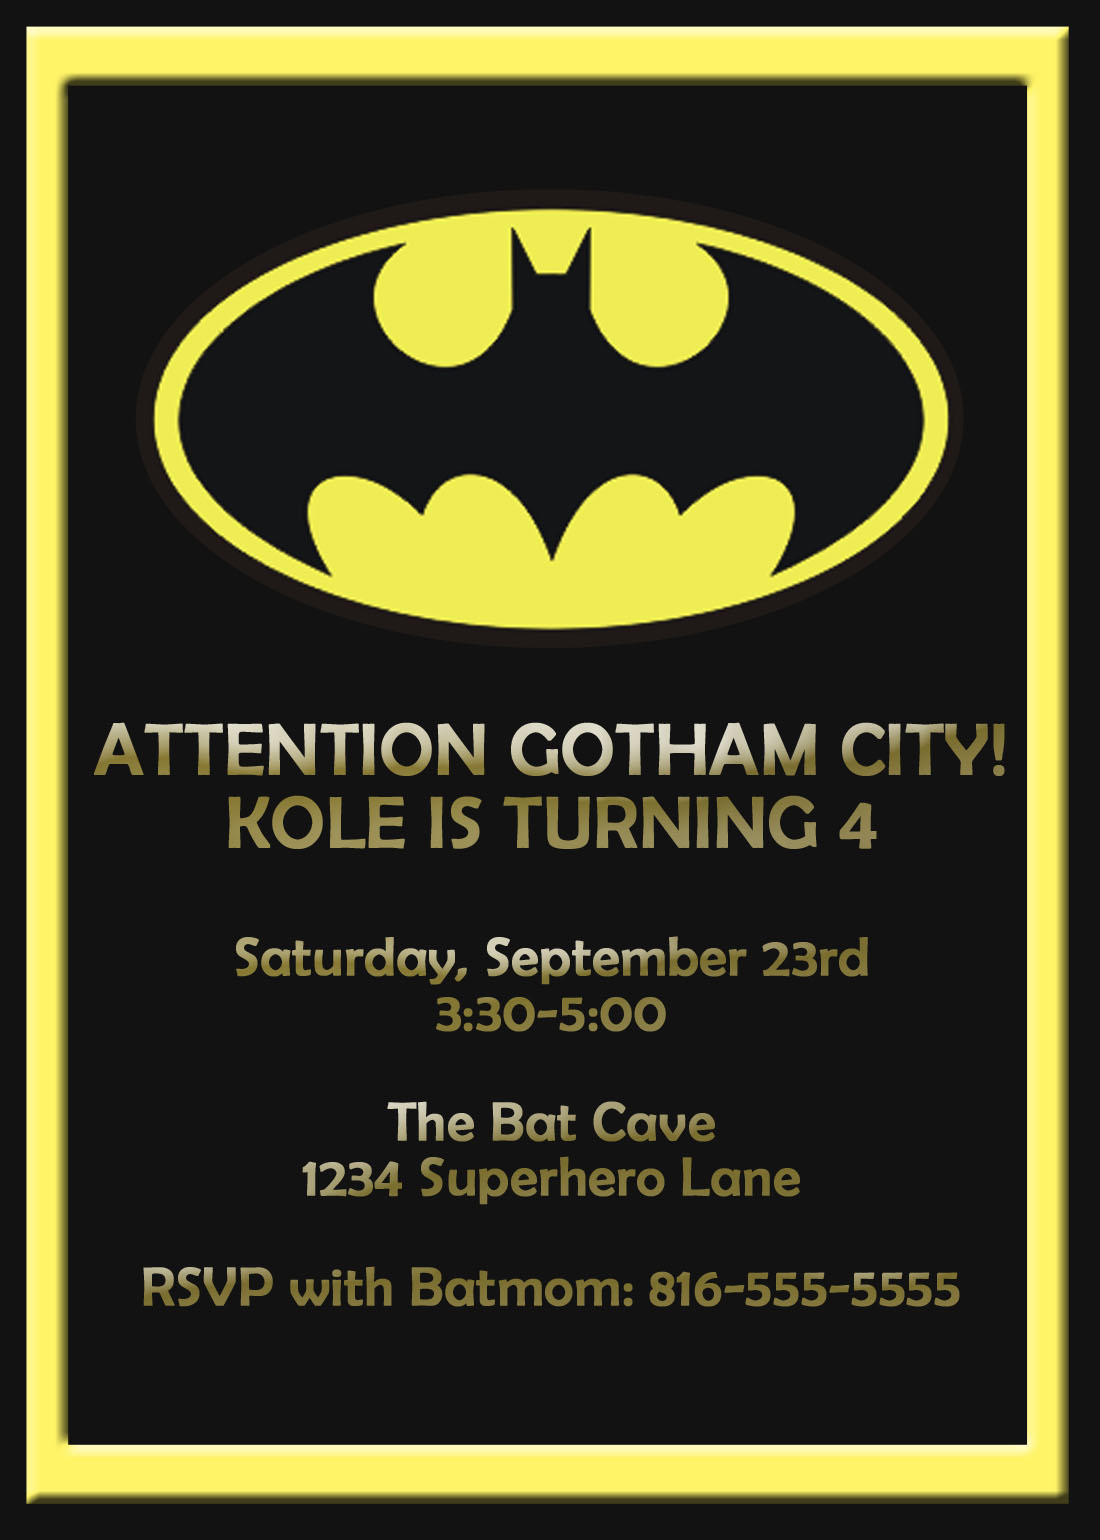 Party City Invitations For Birthdays is nice invitation sample